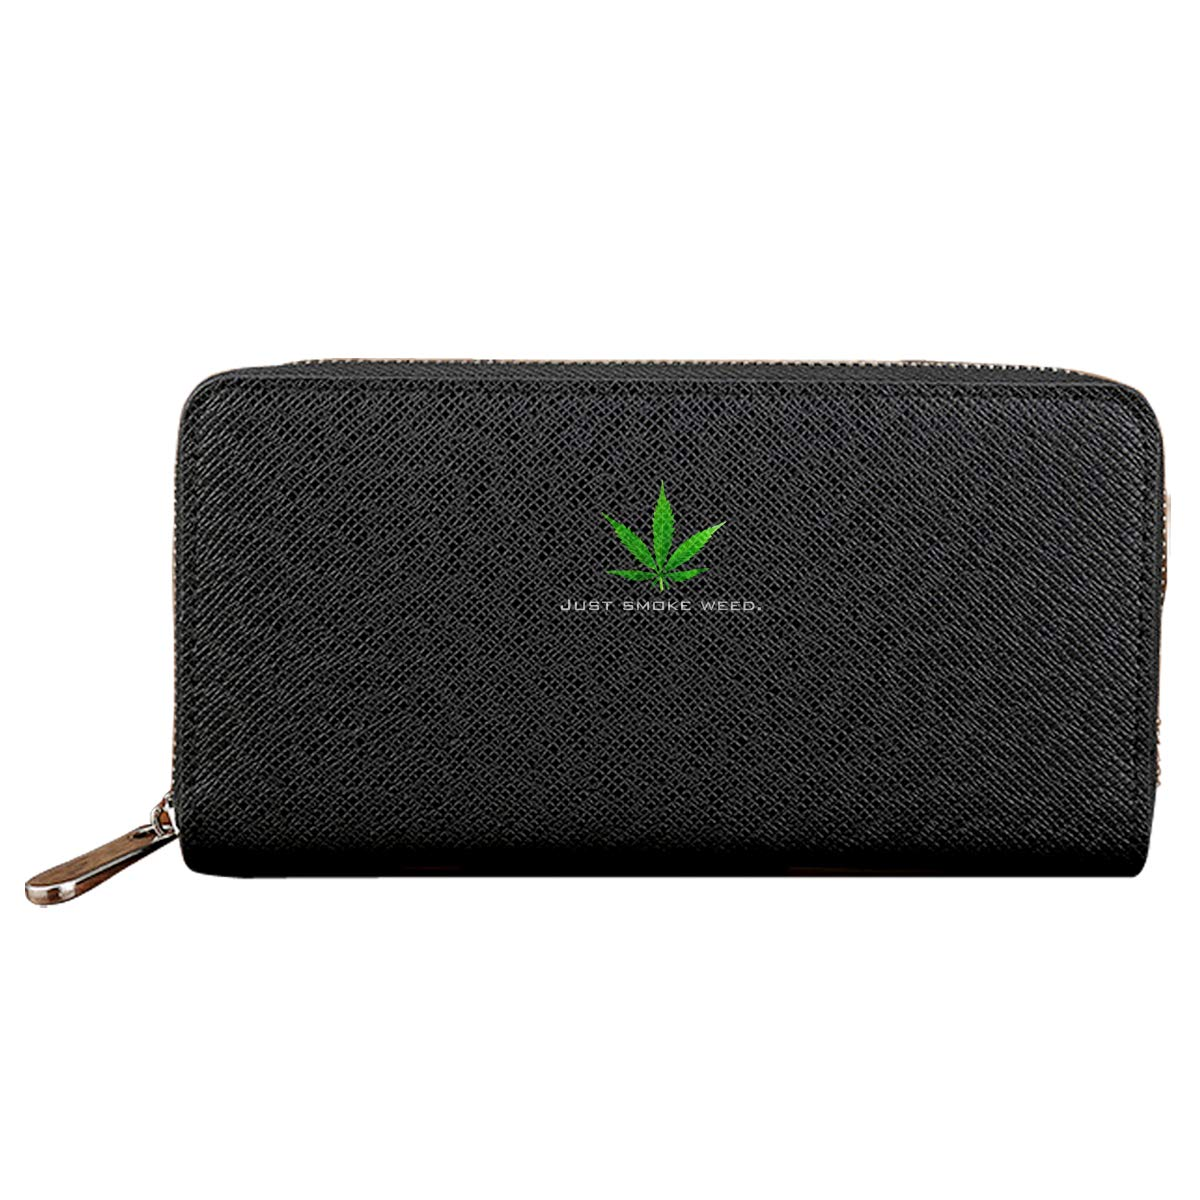 Just Smoke Weed Black Credit Card With Zipper Wallet Business Casual Hand Wallet